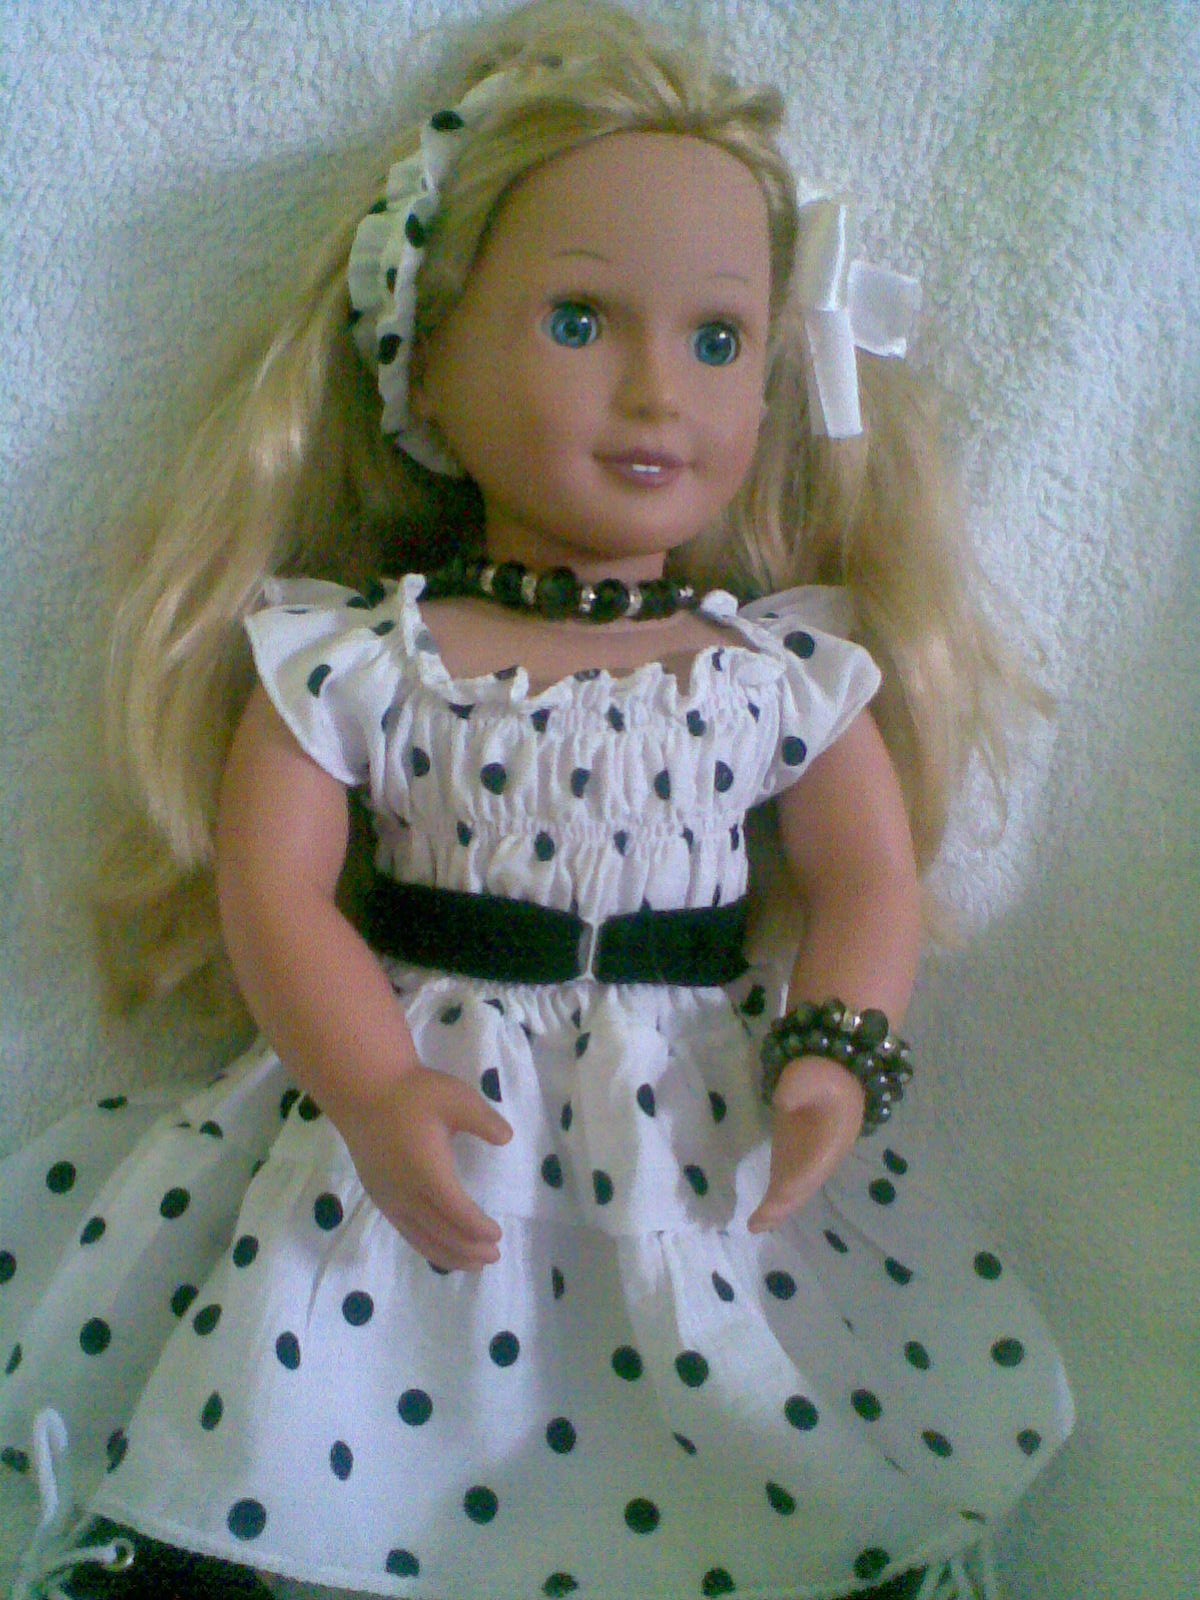 Free Knitting Patterns For Our Generation Dolls : MarindaCreations: Pic of my Battat our Generation Doll in ...